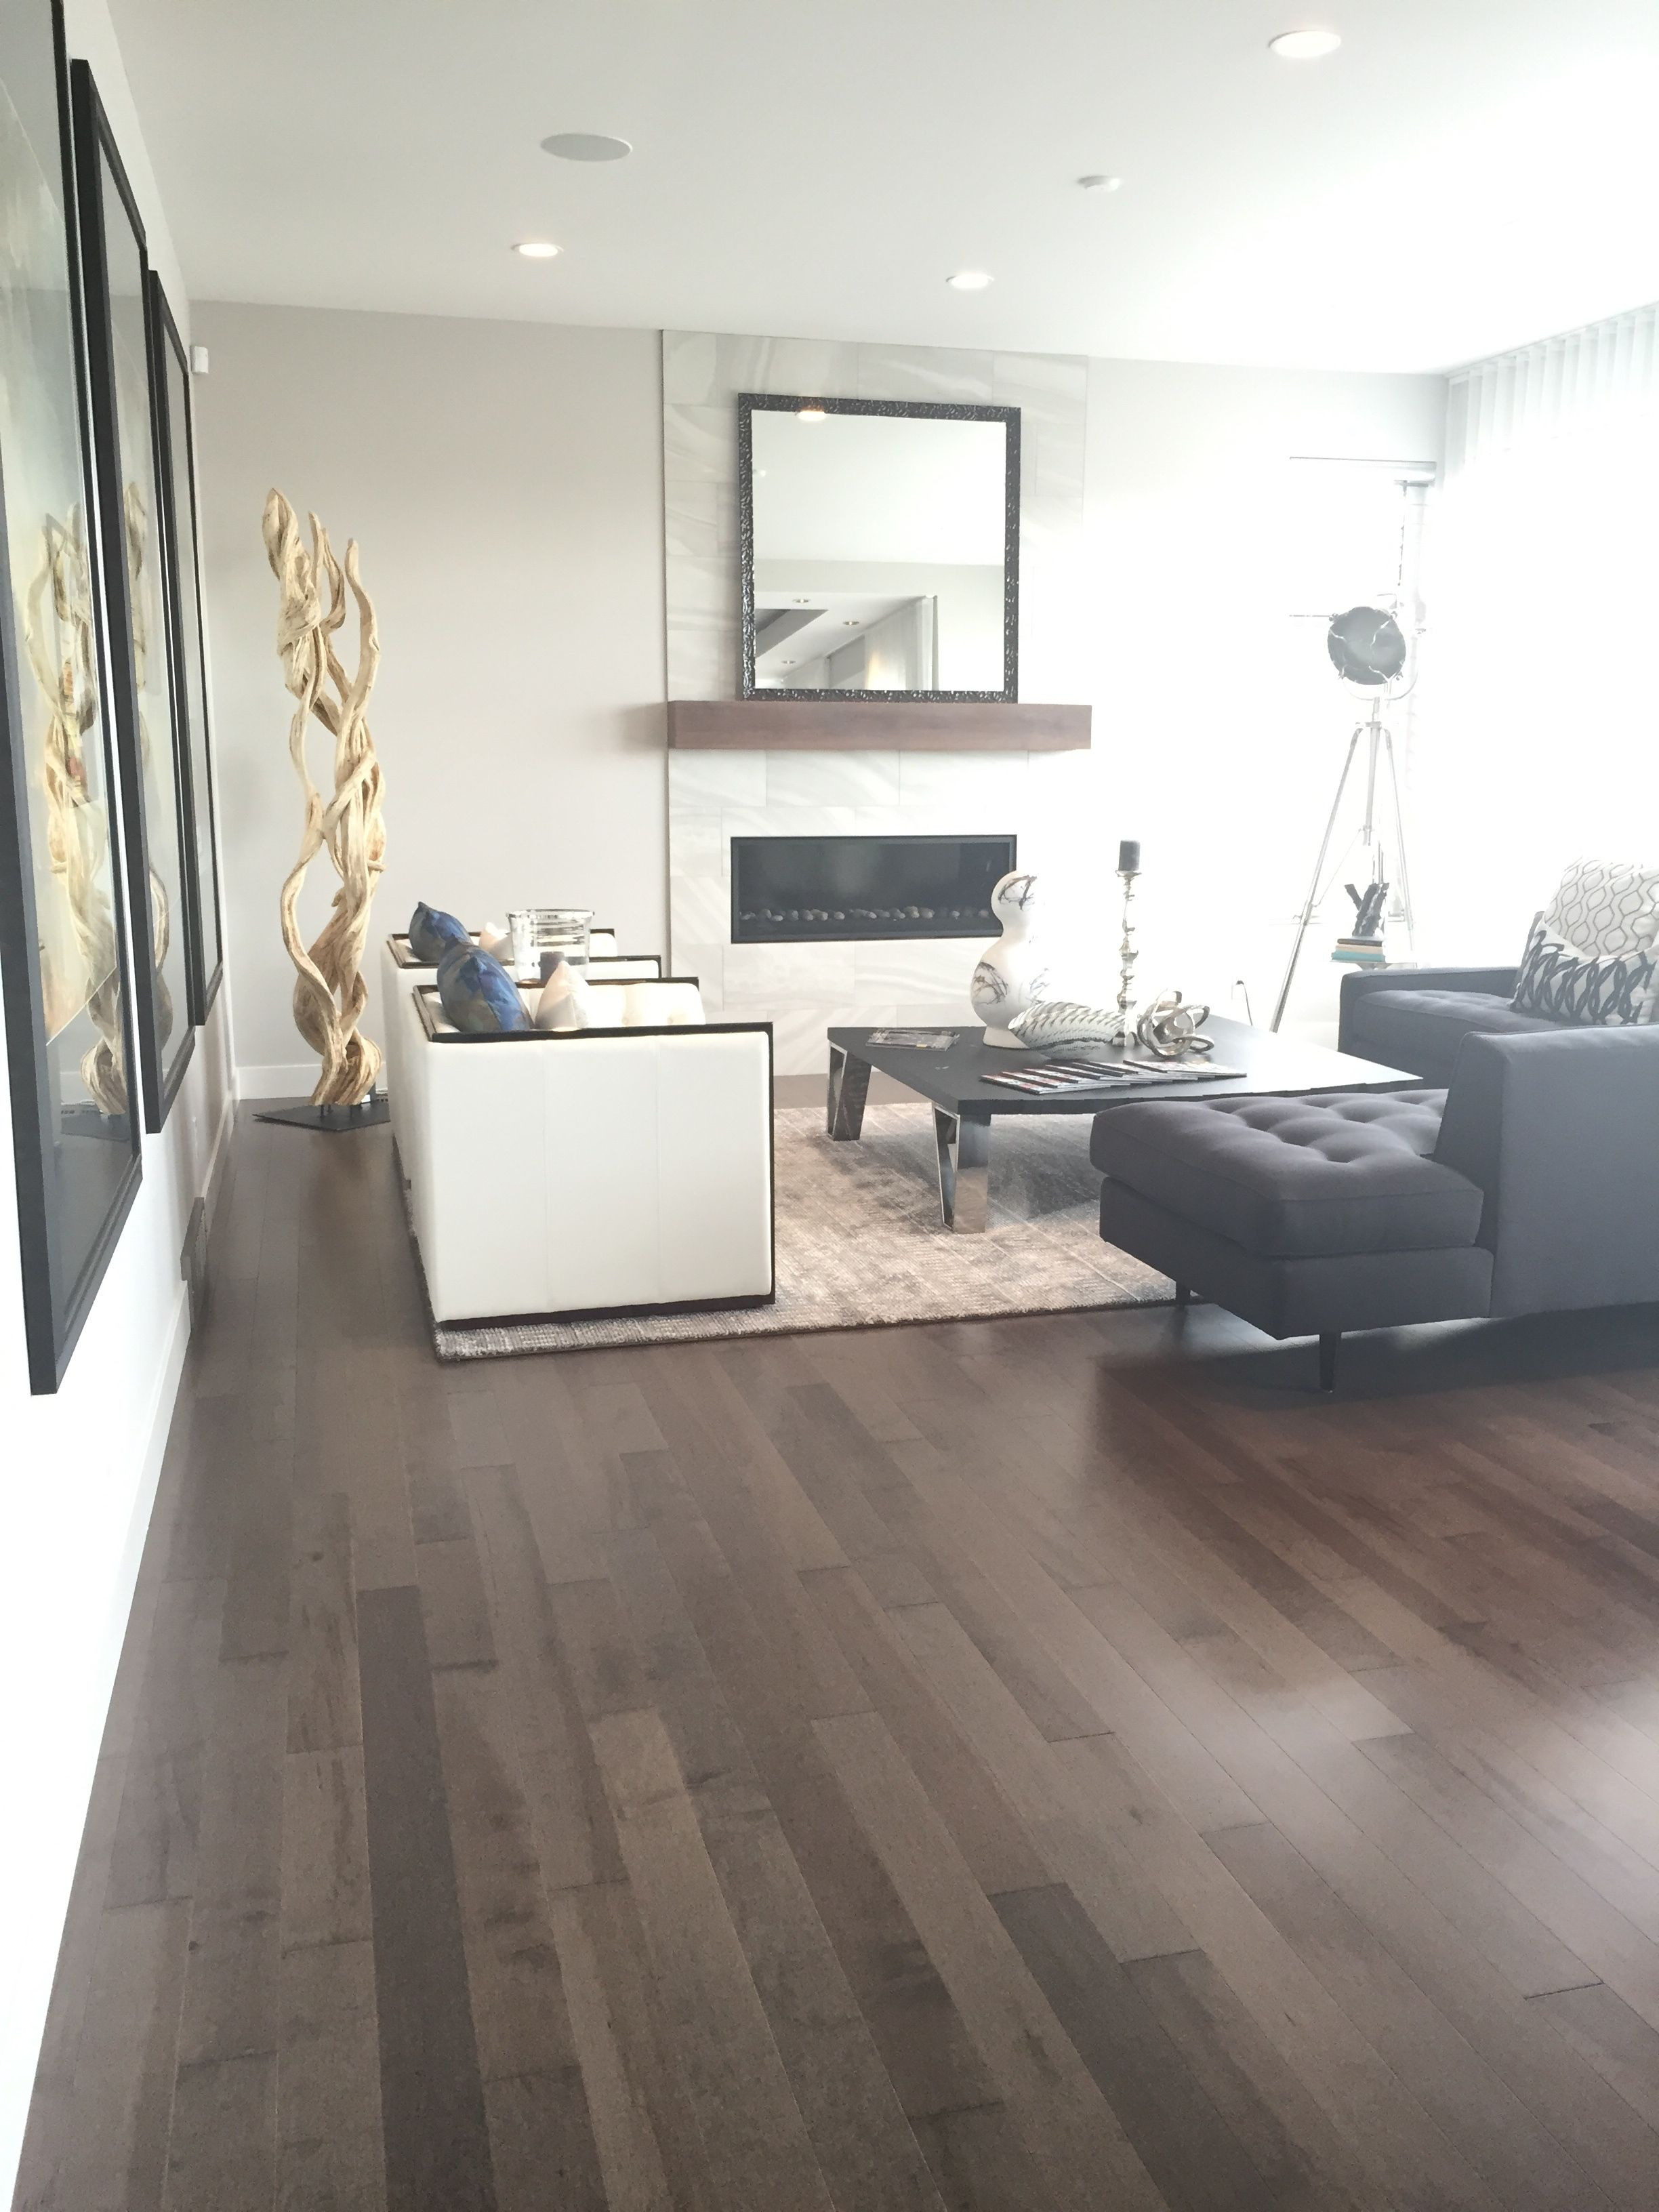 hardwood flooring prices san antonio of smoky grey essential hard maple tradition lauzon hardwood with beautiful living room from the cantata showhome featuring lauzons smokey grey hard maple hardwood flooring from the essential collection